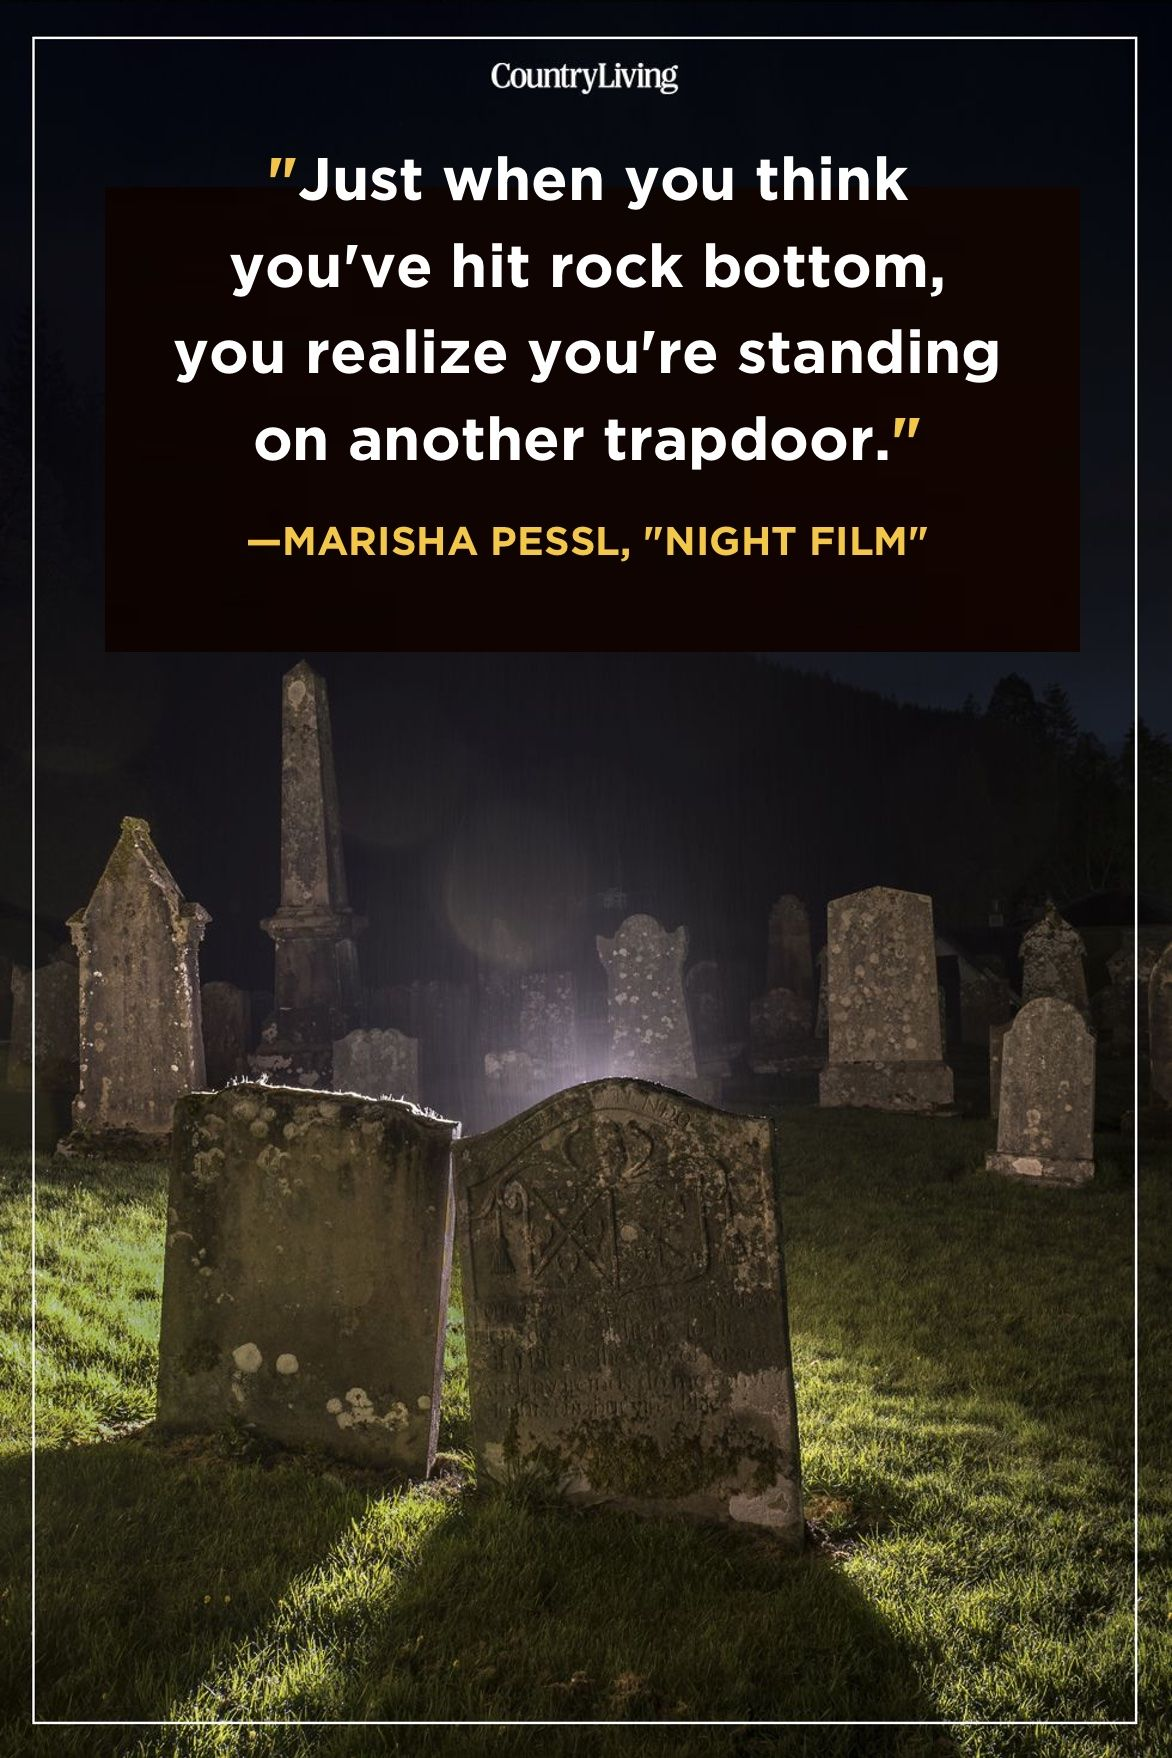 40 Scary Quotes - Creepy Quotes & Sayings About Fear & Eerie Things